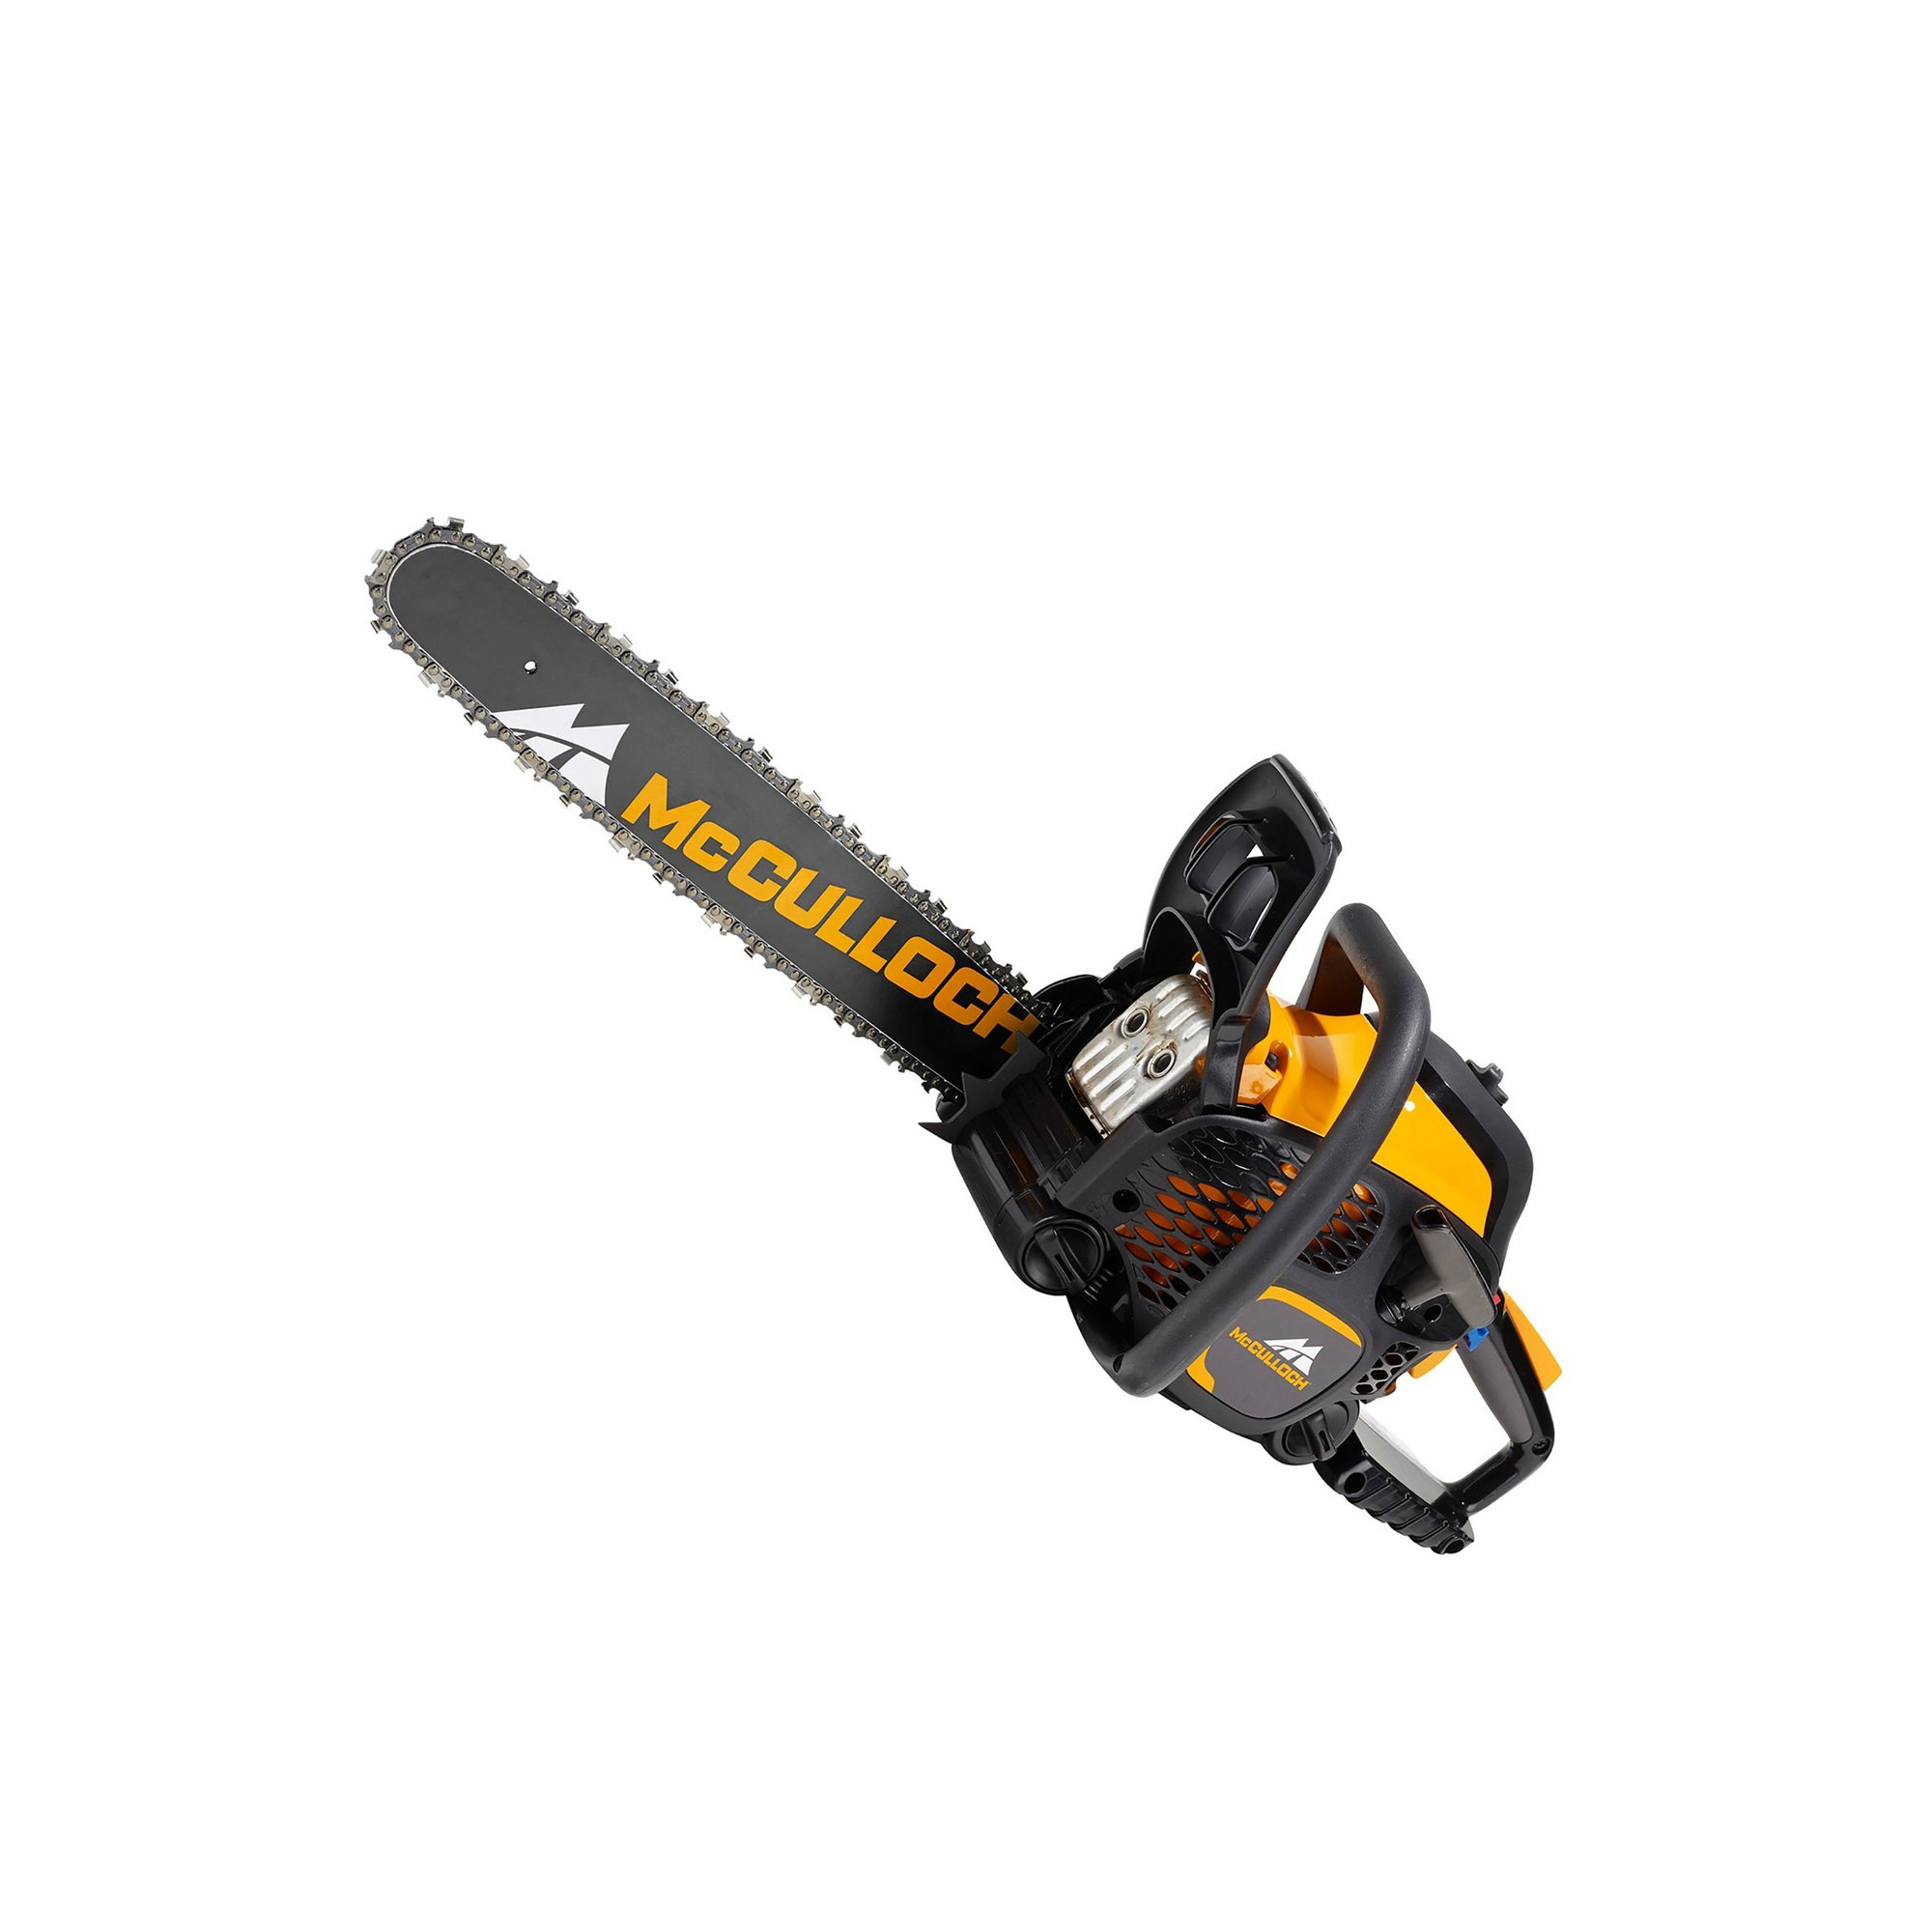 Image of McCulloch CS50S Petrol Chainsaw